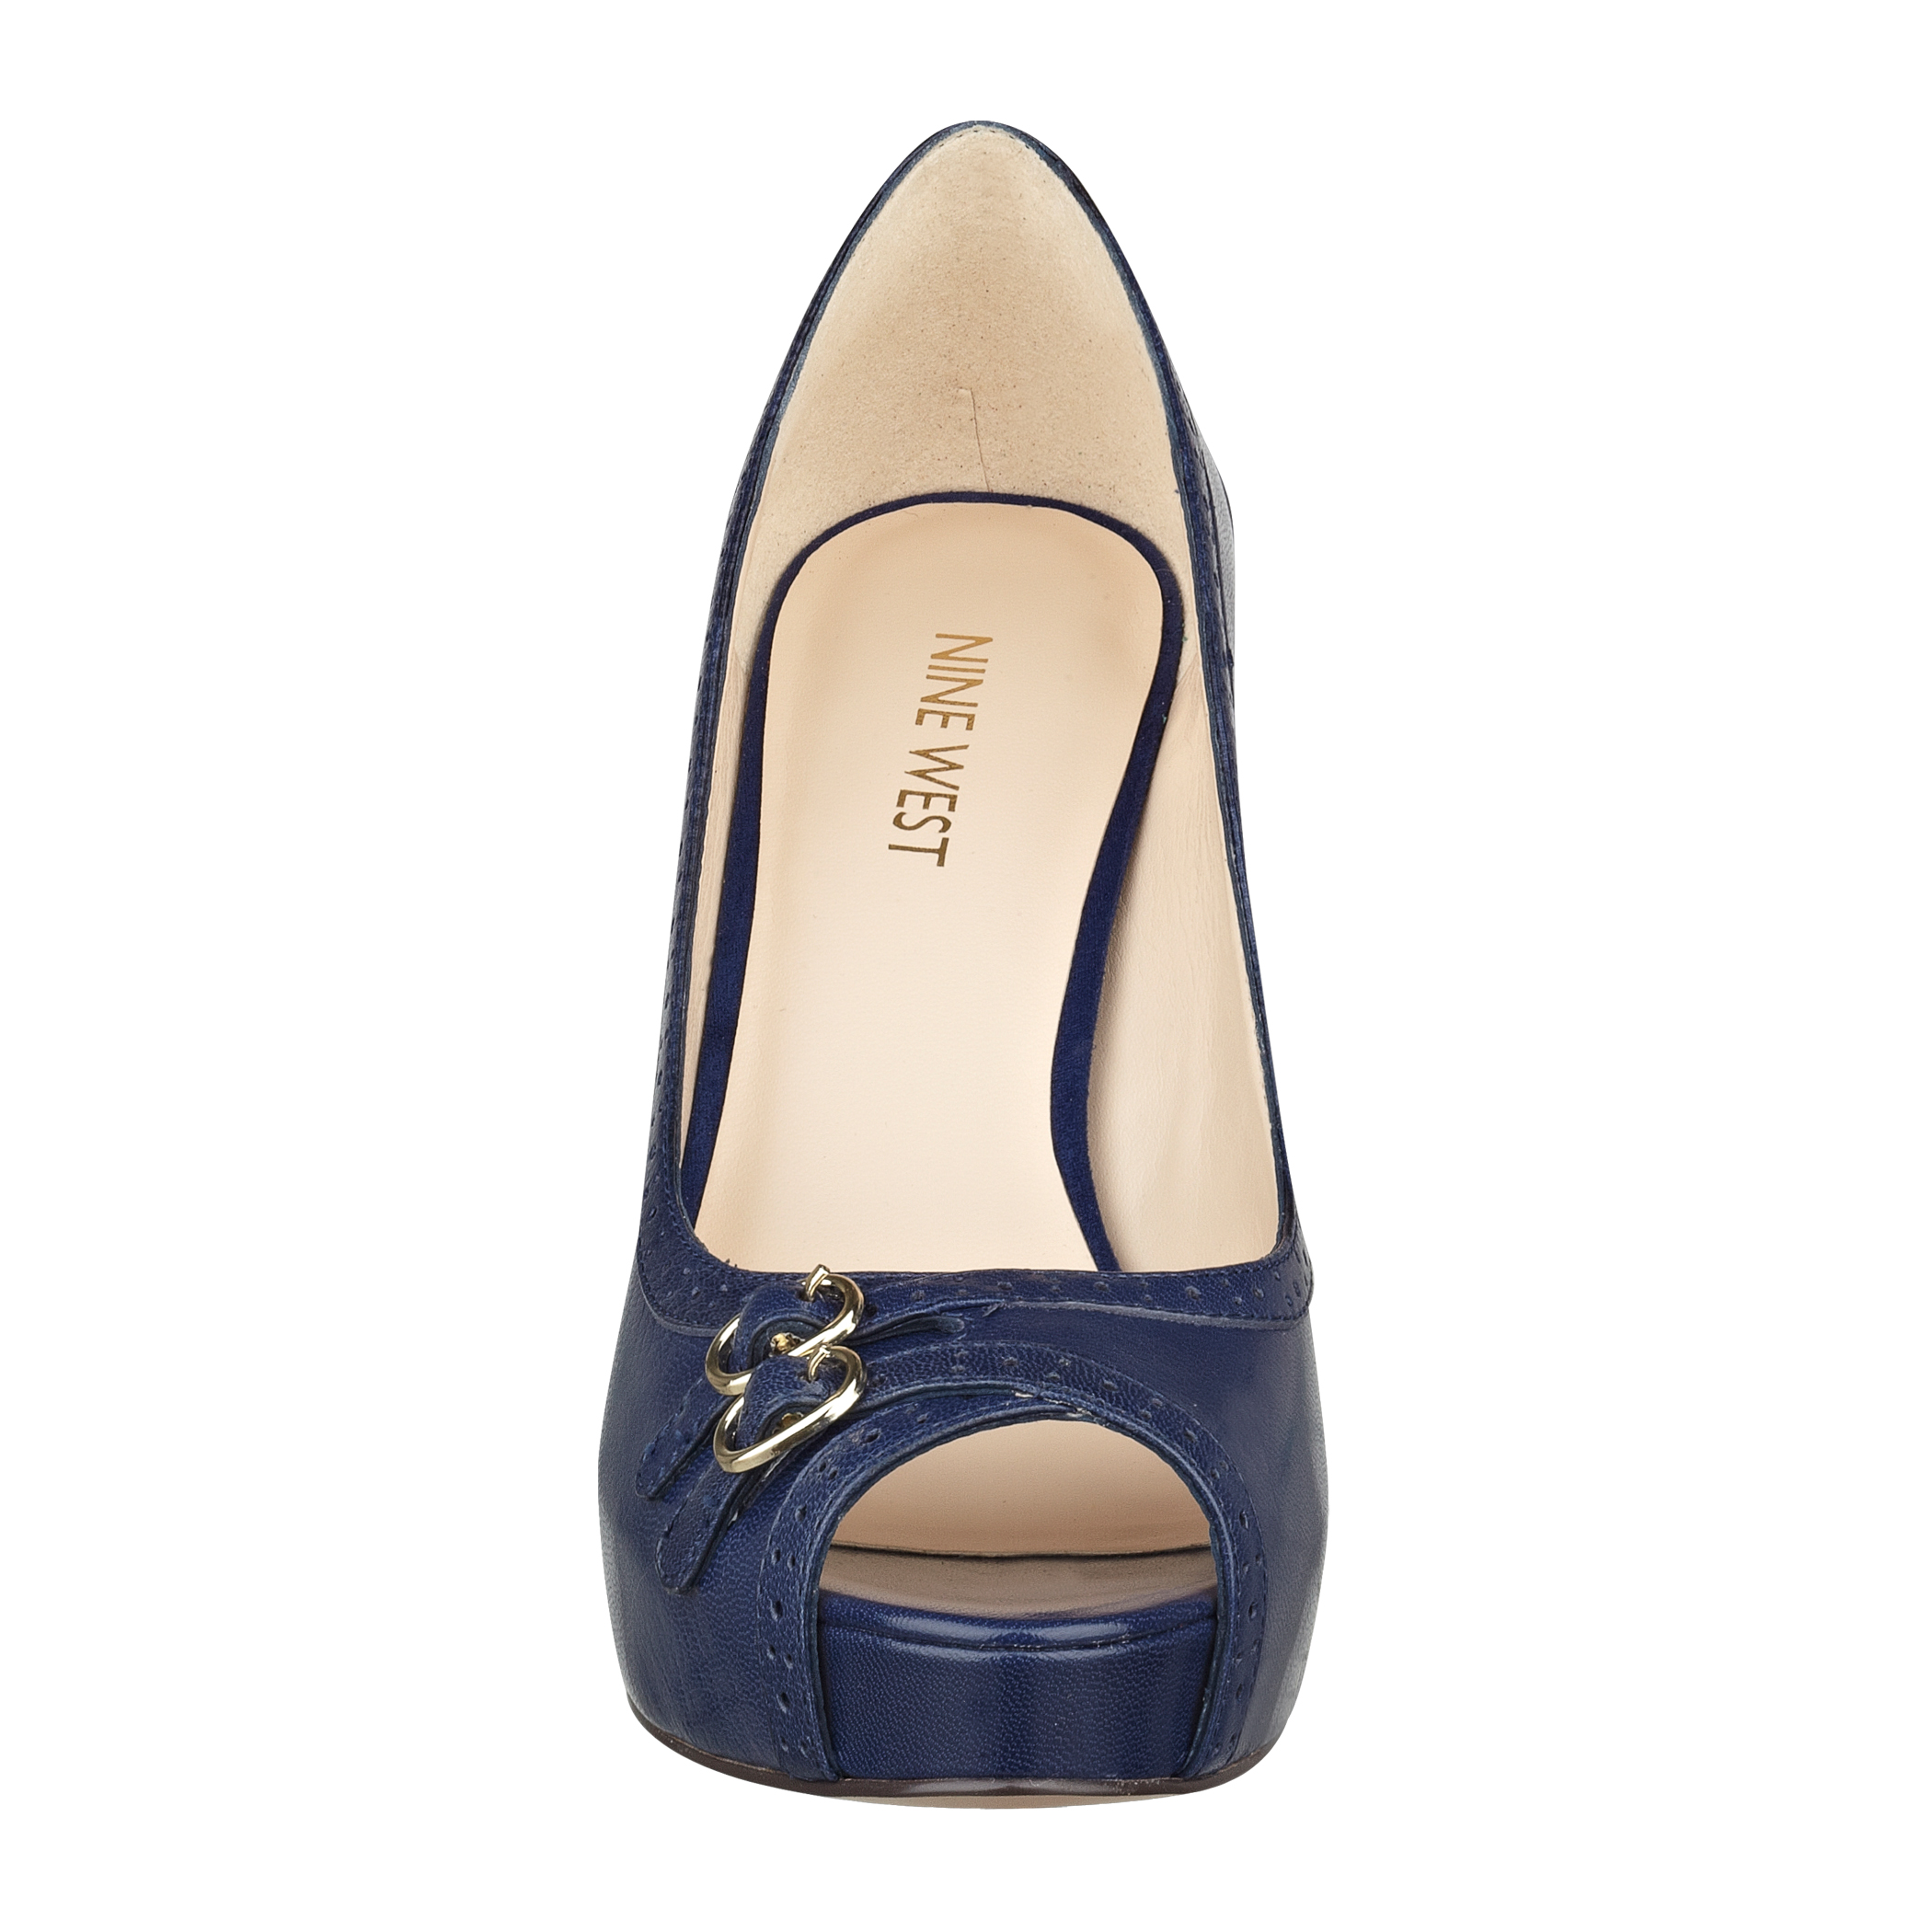 Latest Fashion of Stiletto & Heels Collection for women by Nine West(10)